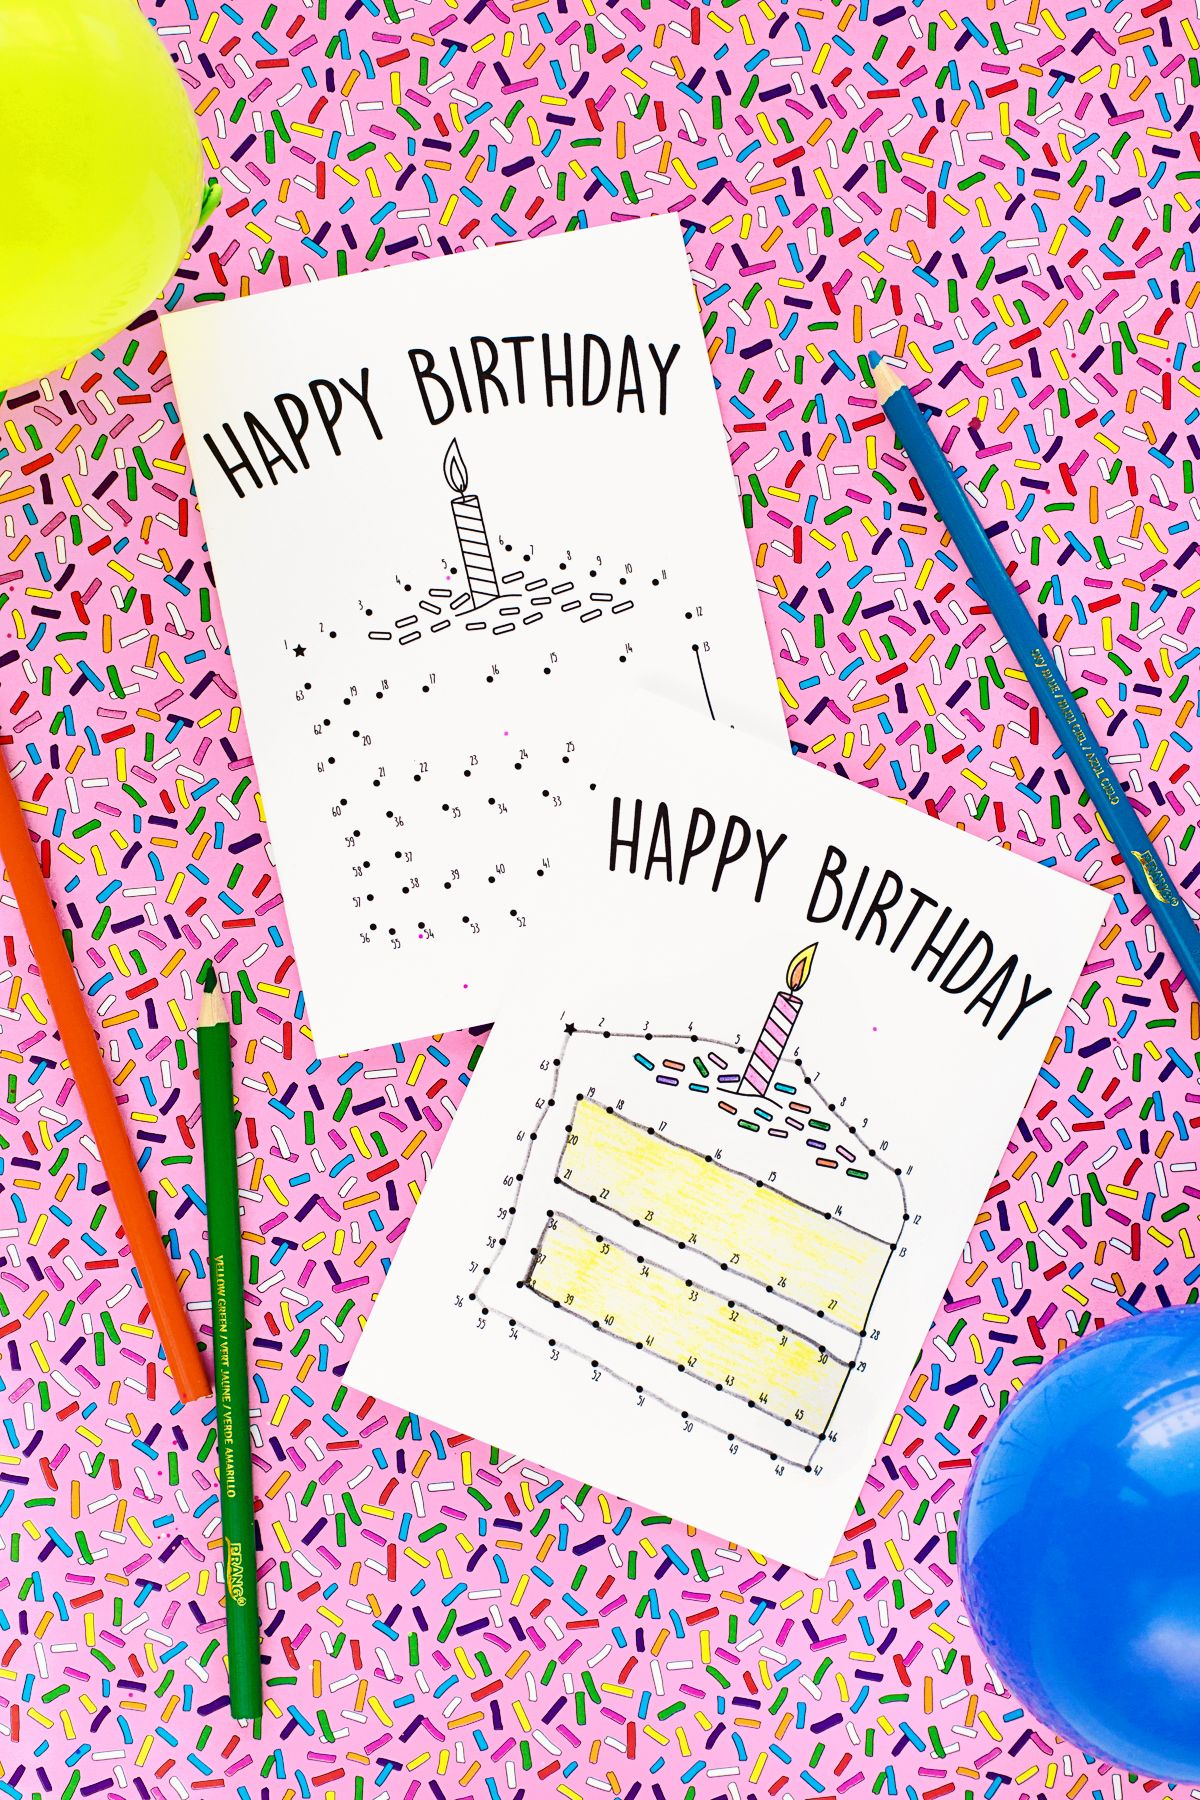 Free Printable Birthday Cards for Kids – Free Printable Birthday Cards Kids